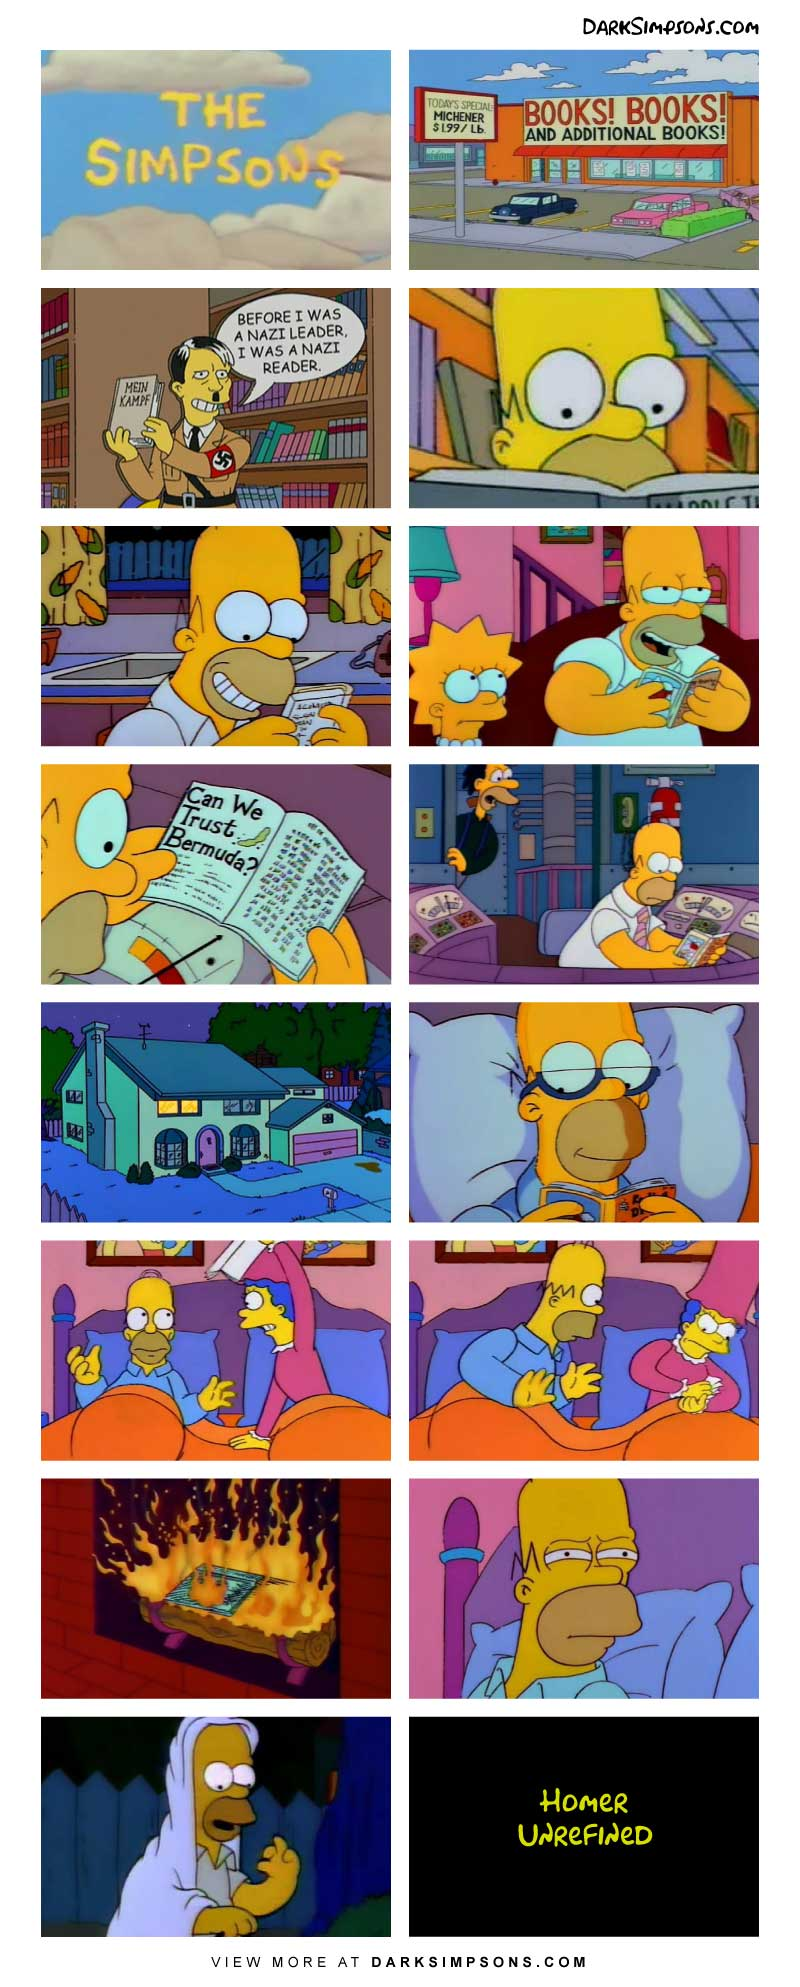 Homer spends the Saturday at the local bookstore. He finds himself a new favorite book and it changes his life.